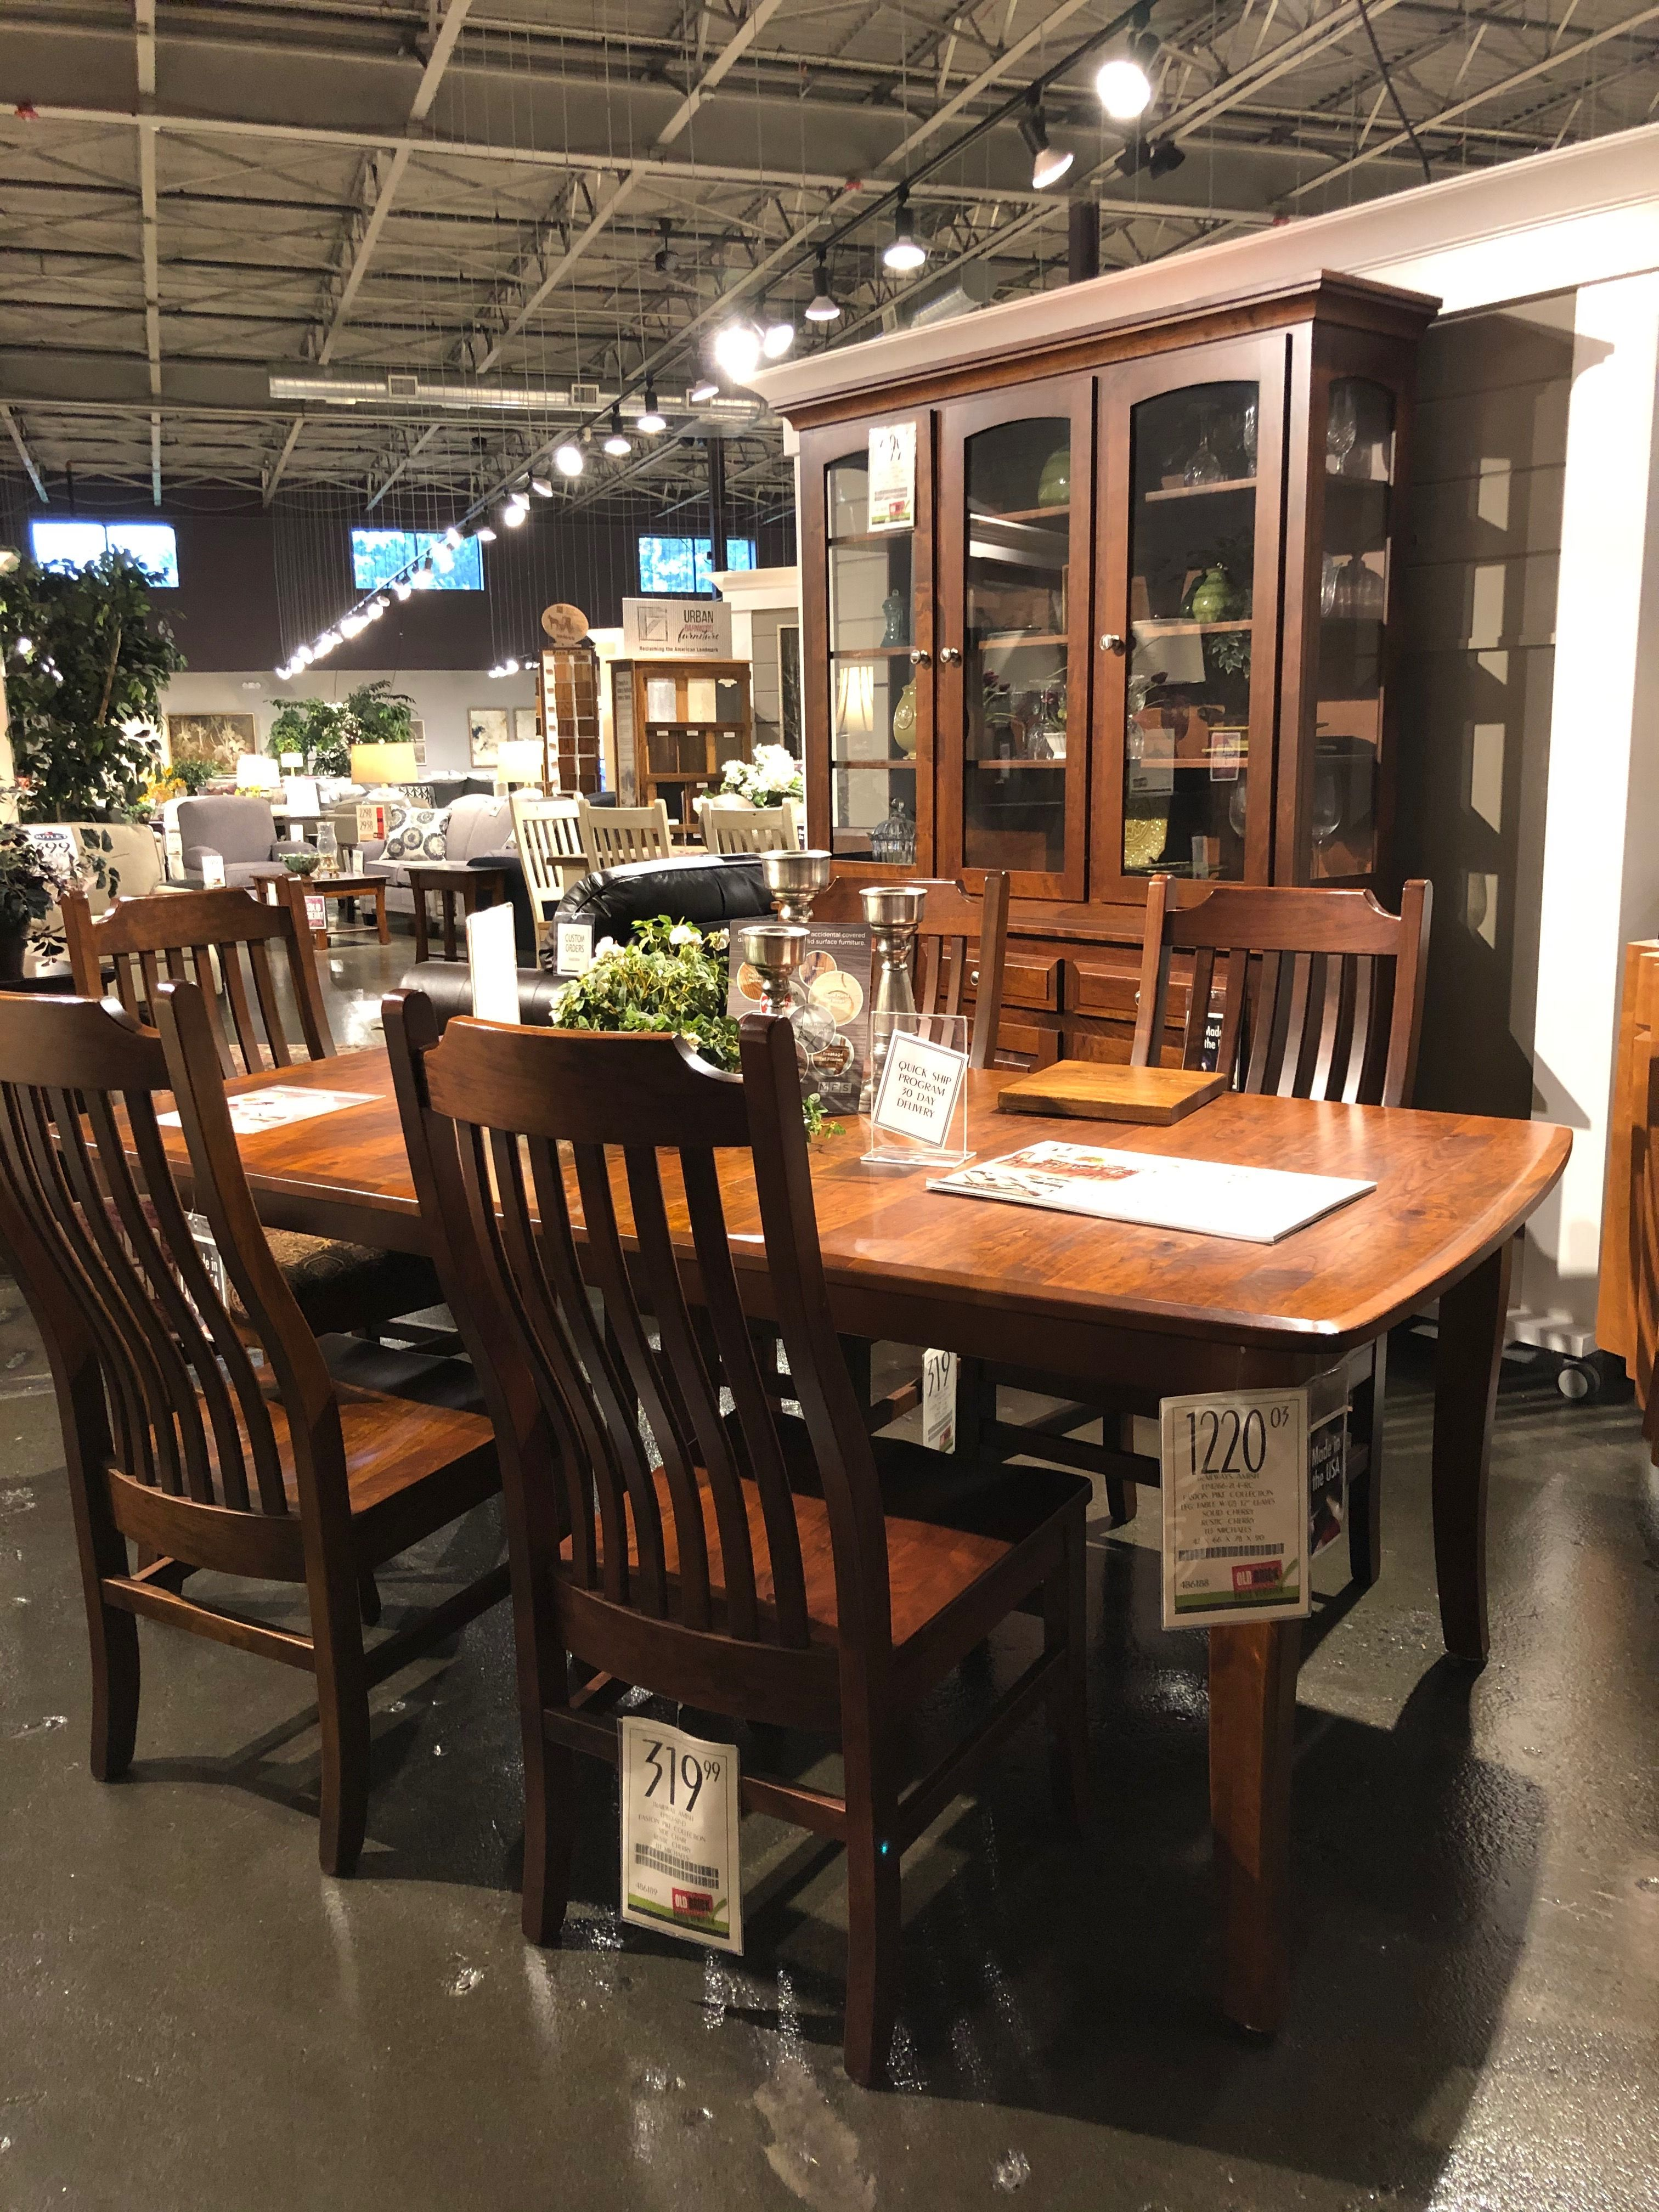 The Customizable Trailway Amish Collection Link To Table Below